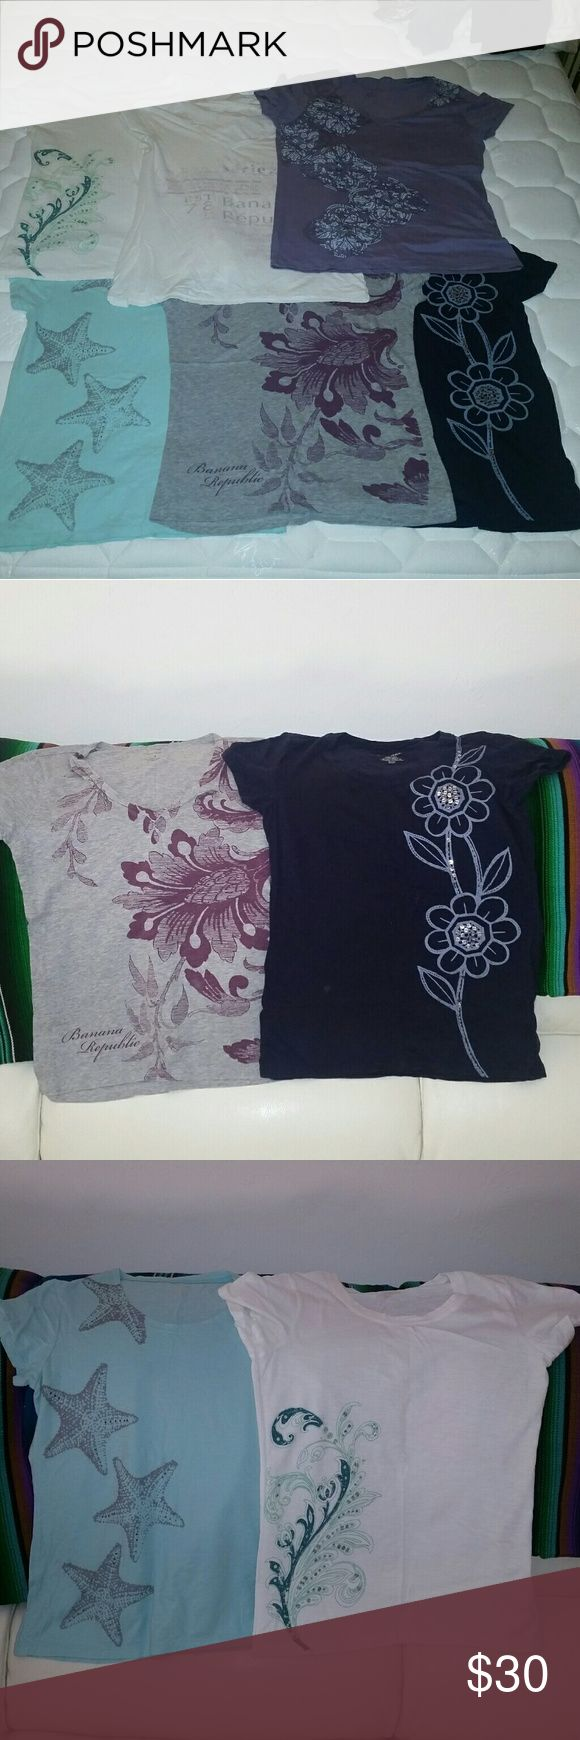 Lot of 6 Banana Republic Tshirts 6 size small Banana Republic tshirts. Great condition, no damage. Some are crew neck, some are v-neck. Can mix and match from other lots of tshirts i have listed. Or you can just buy 1, 2, 3....however many you want for $5 each. Just message me with details and descriptions. Banana Republic  Tops Tees - Short Sleeve